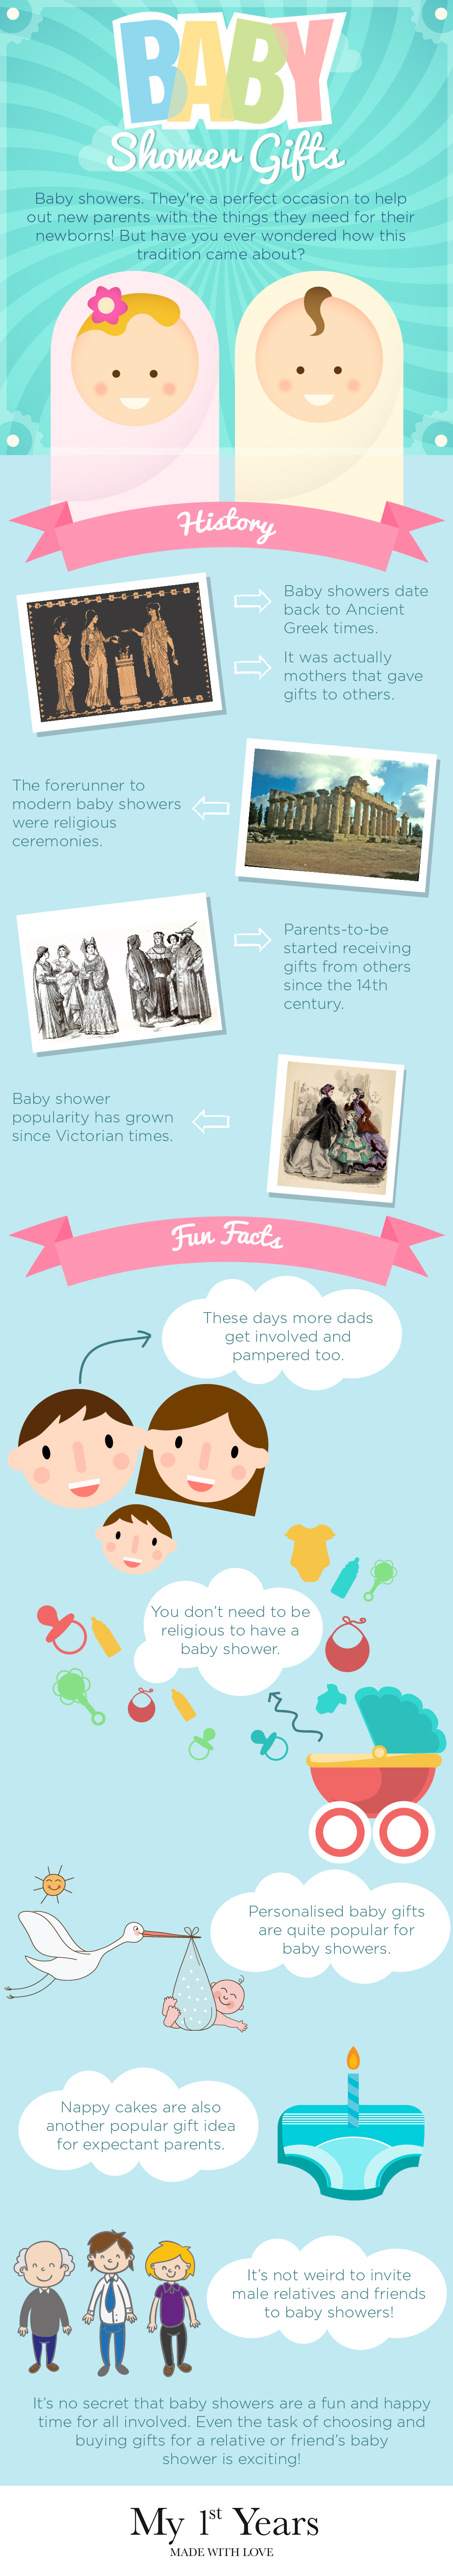 Baby showers gifts